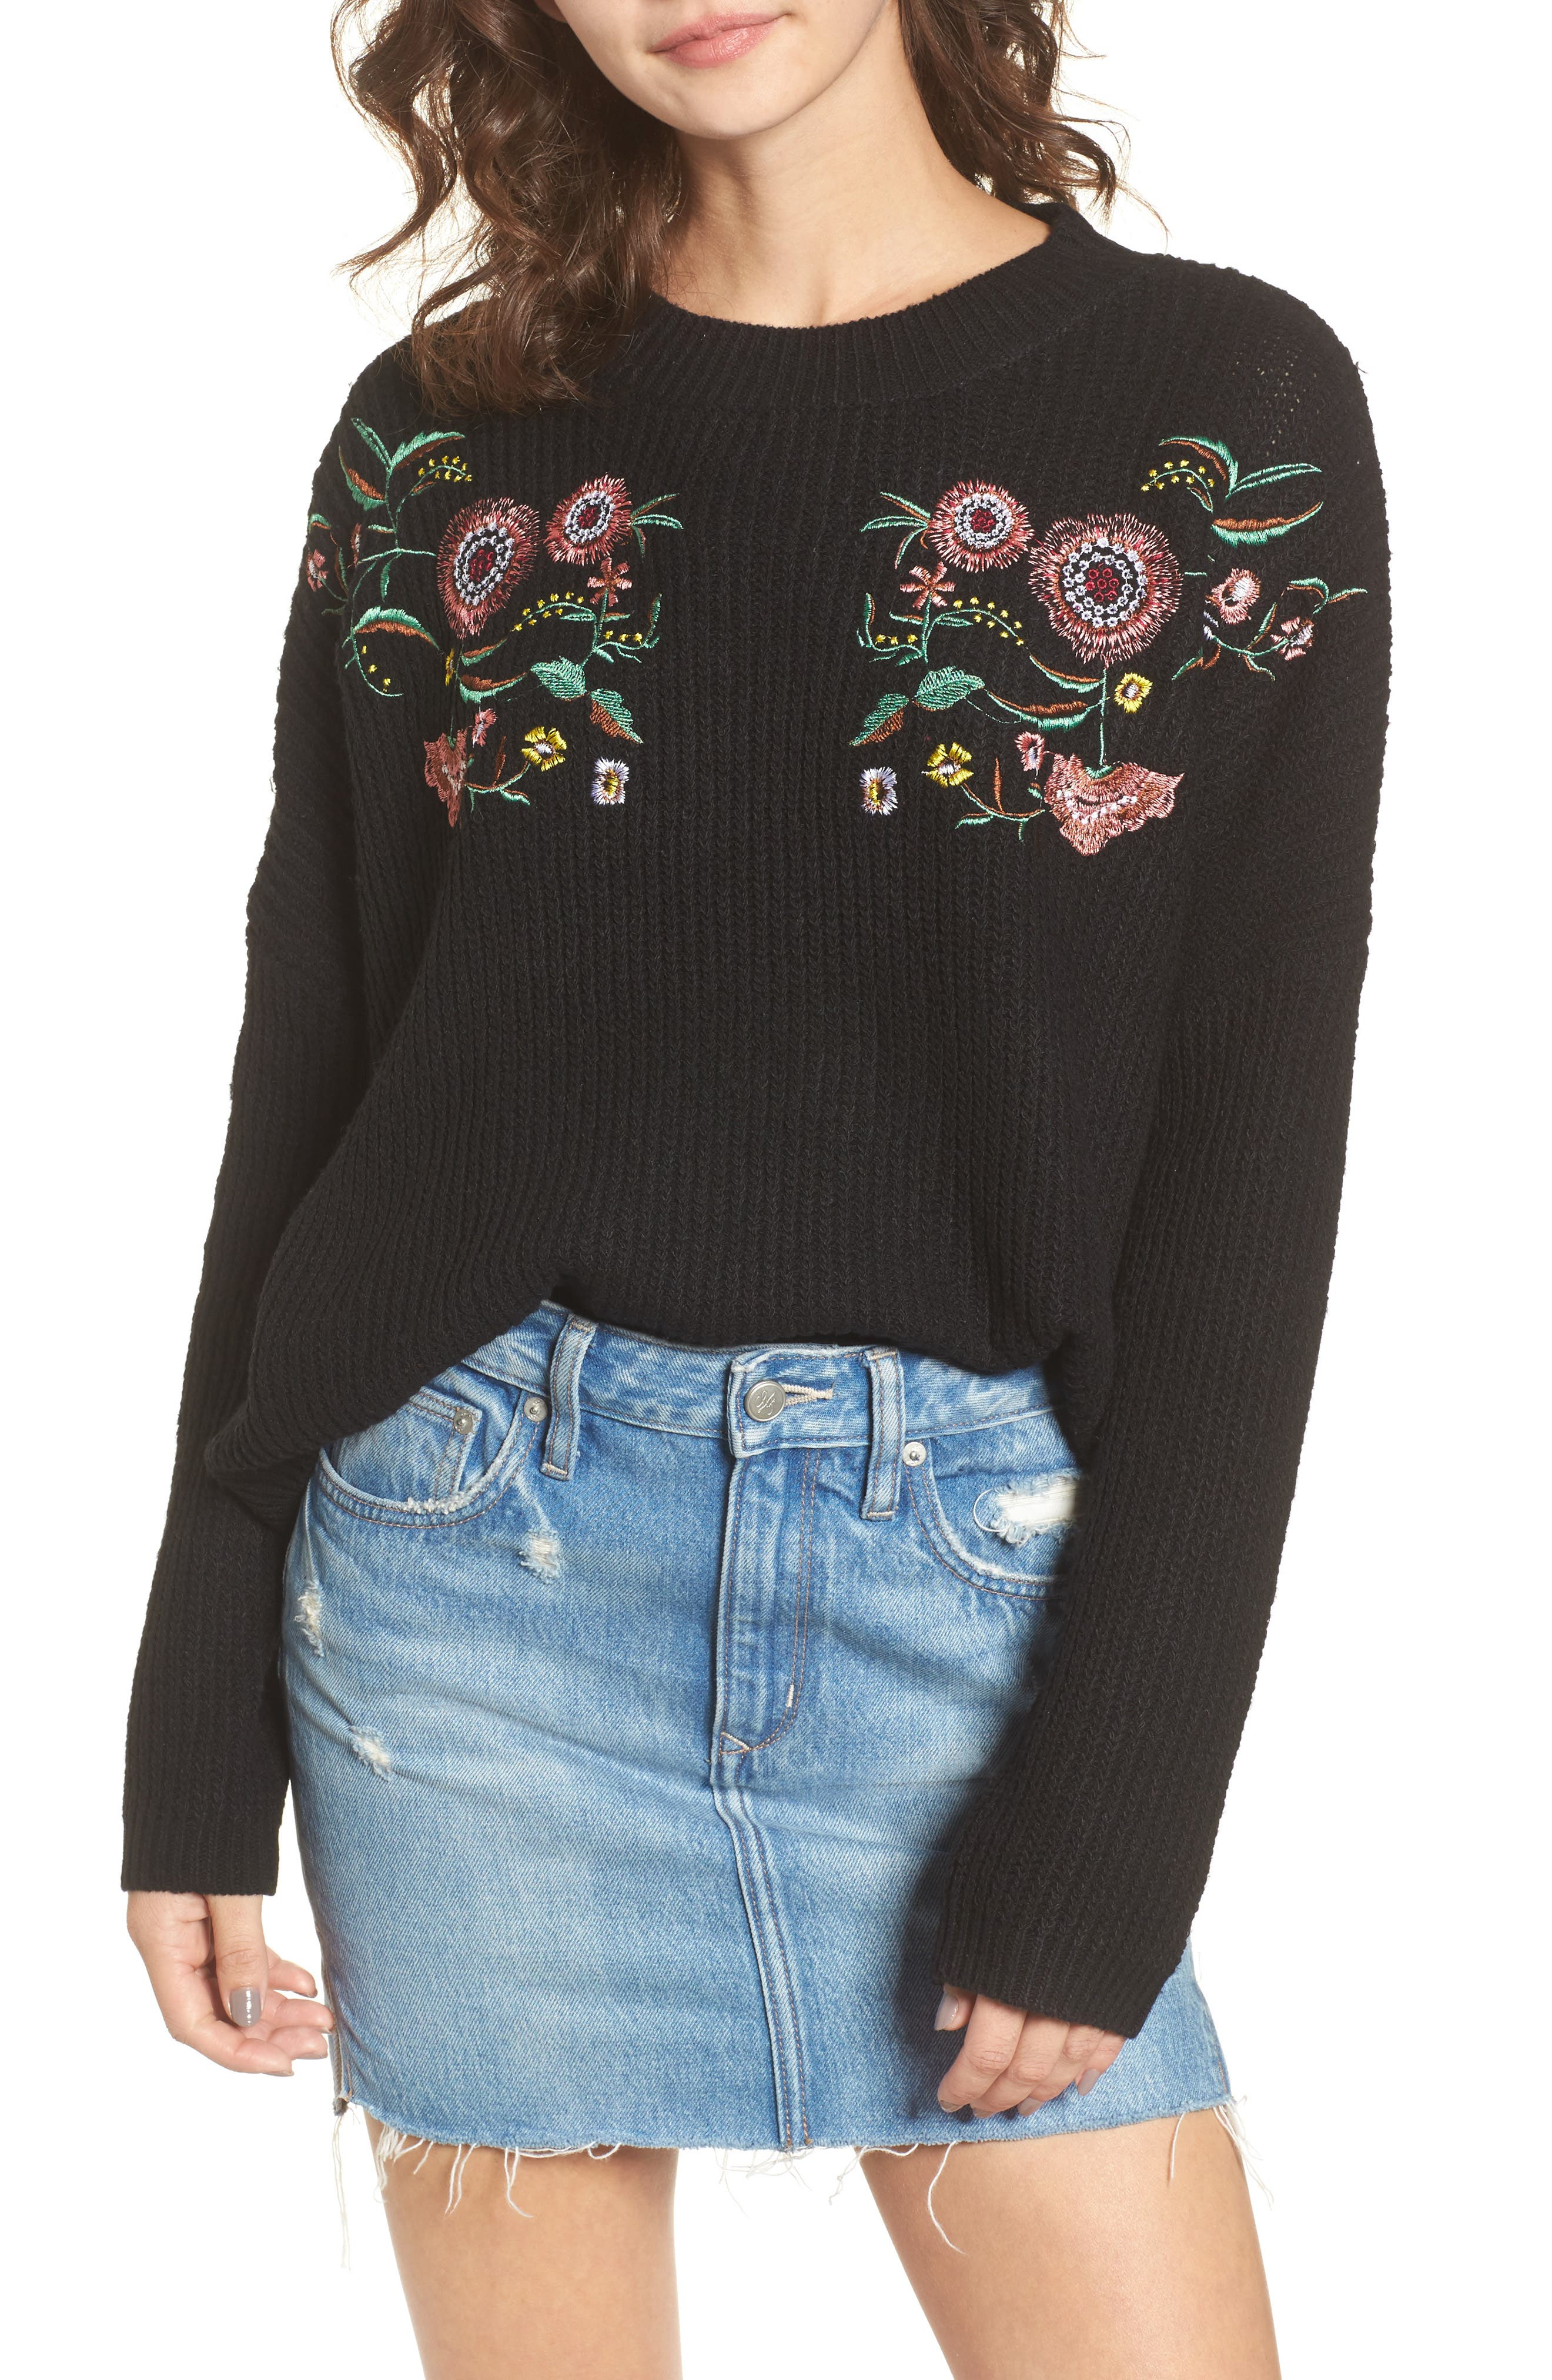 Main Image - Woven Heart Embroidered Floral Sweater